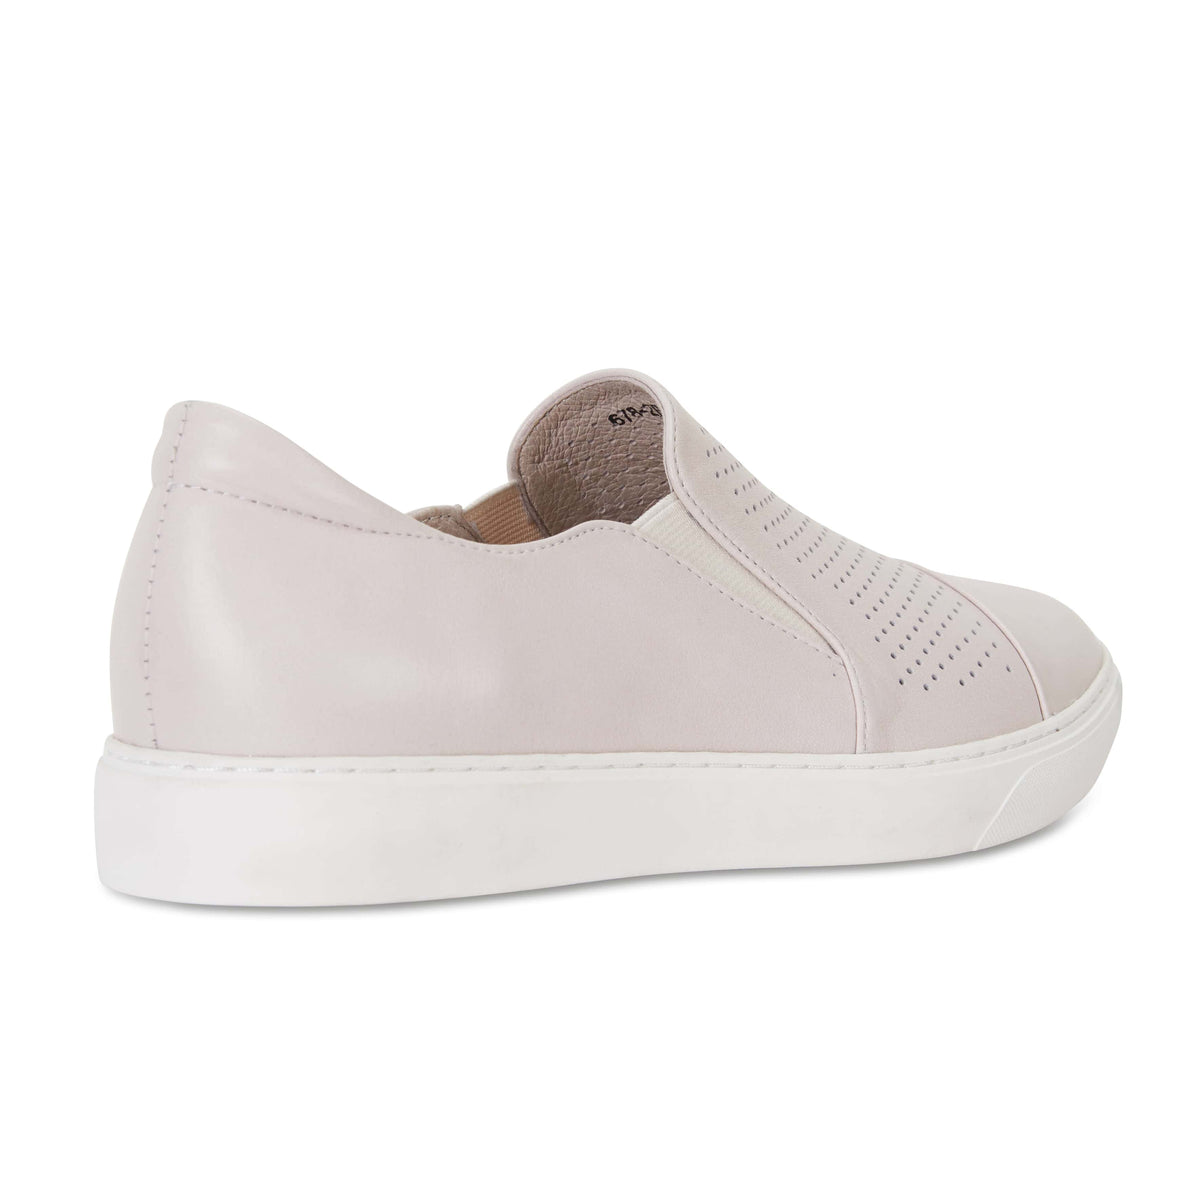 Celina Sneaker in Taupe Leather